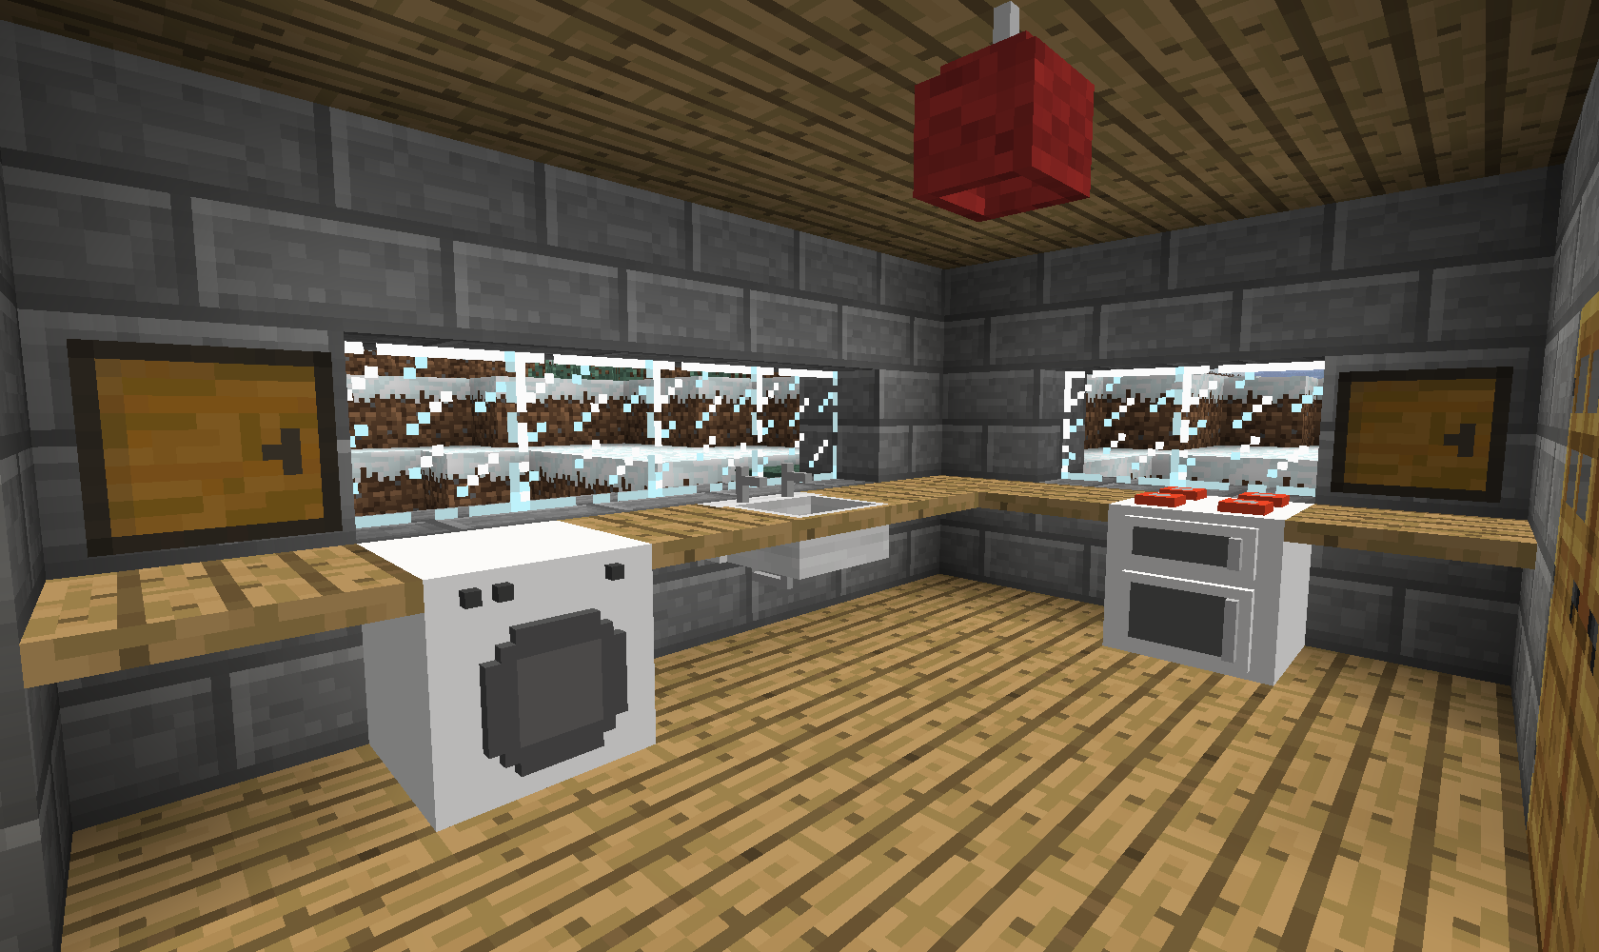 http://www.beginminecraft.com/wp-content/uploads/2013/05/Jammy-Furniture-Mod-612.png